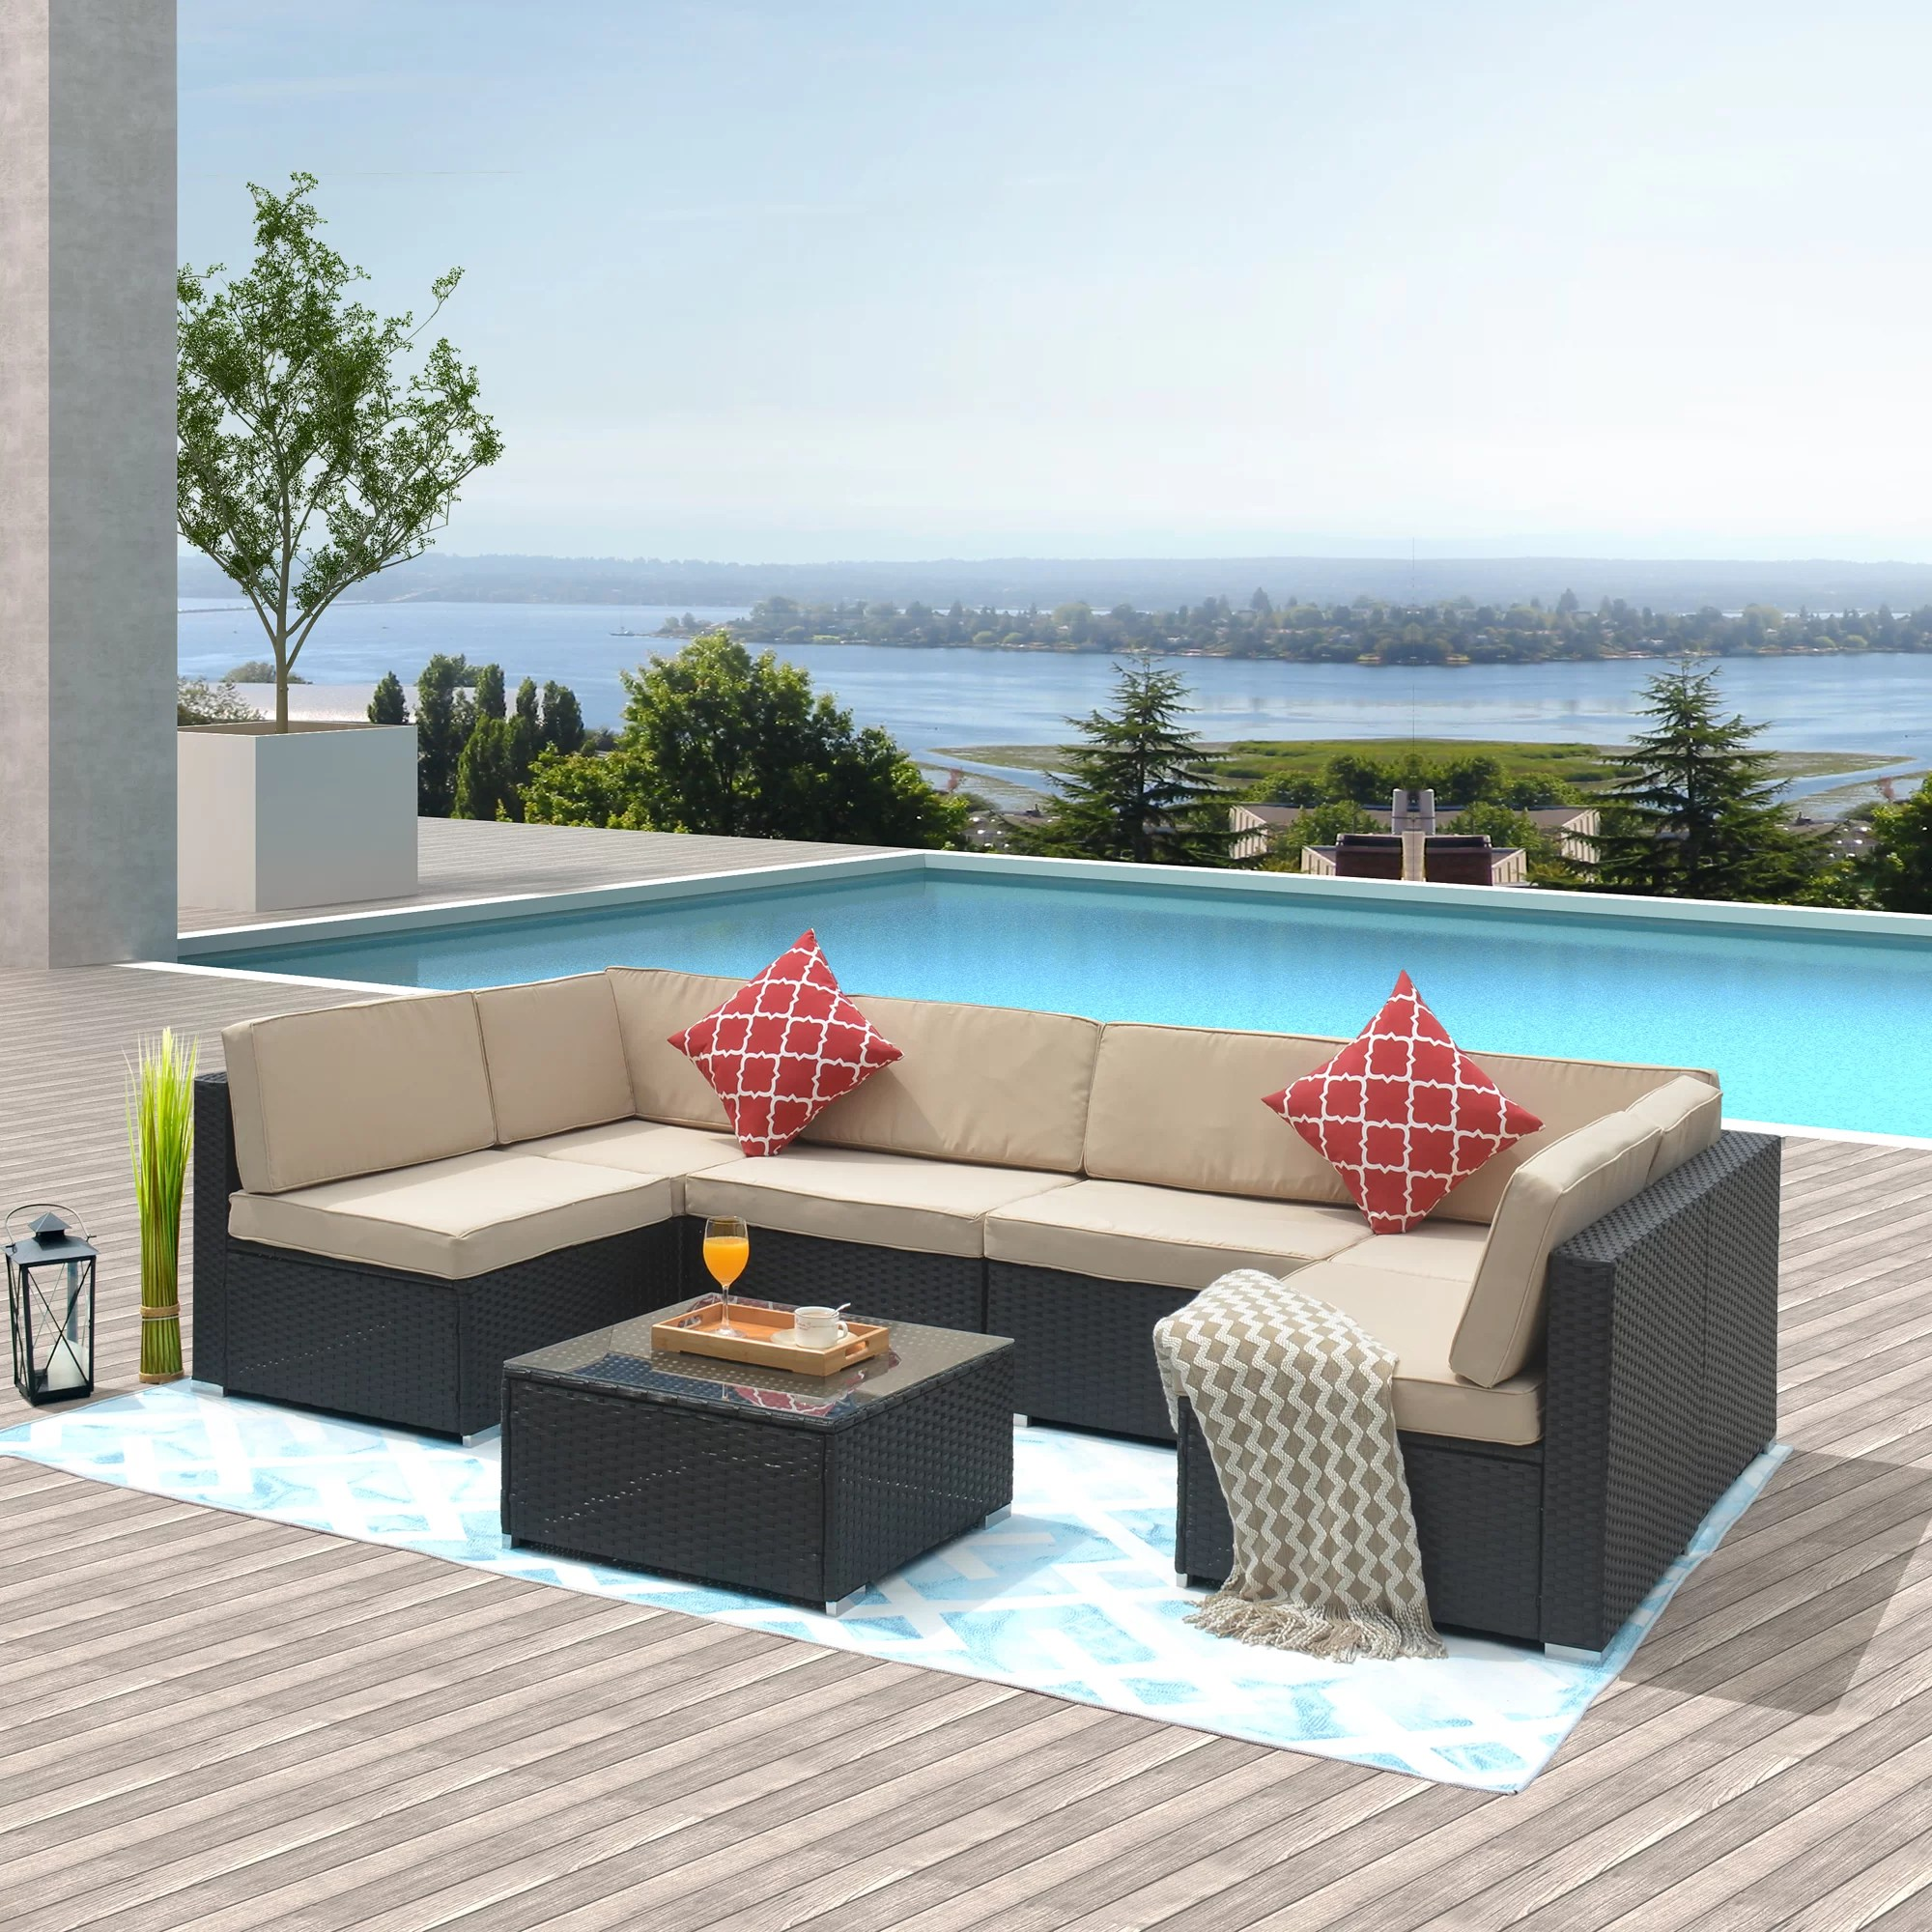 bailey grace 7 piece rattan sofa seating group with cushions